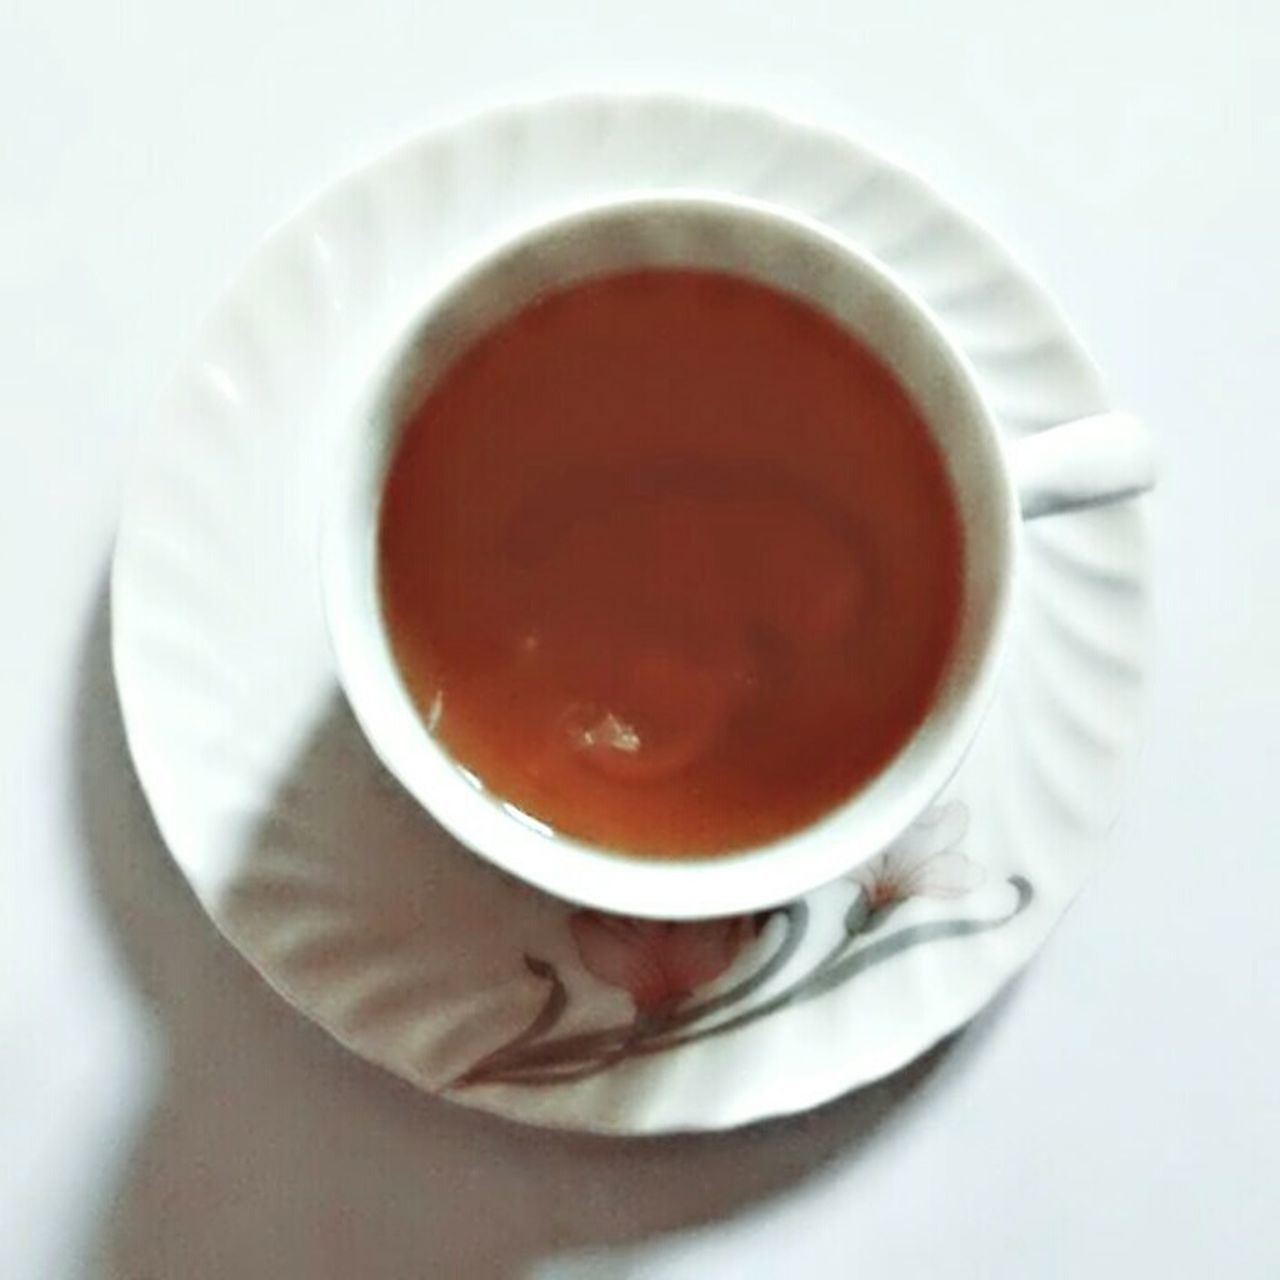 drink, saucer, coffee cup, food and drink, refreshment, coffee - drink, cup, white color, directly above, close-up, no people, freshness, studio shot, tea - hot drink, indoors, white background, day